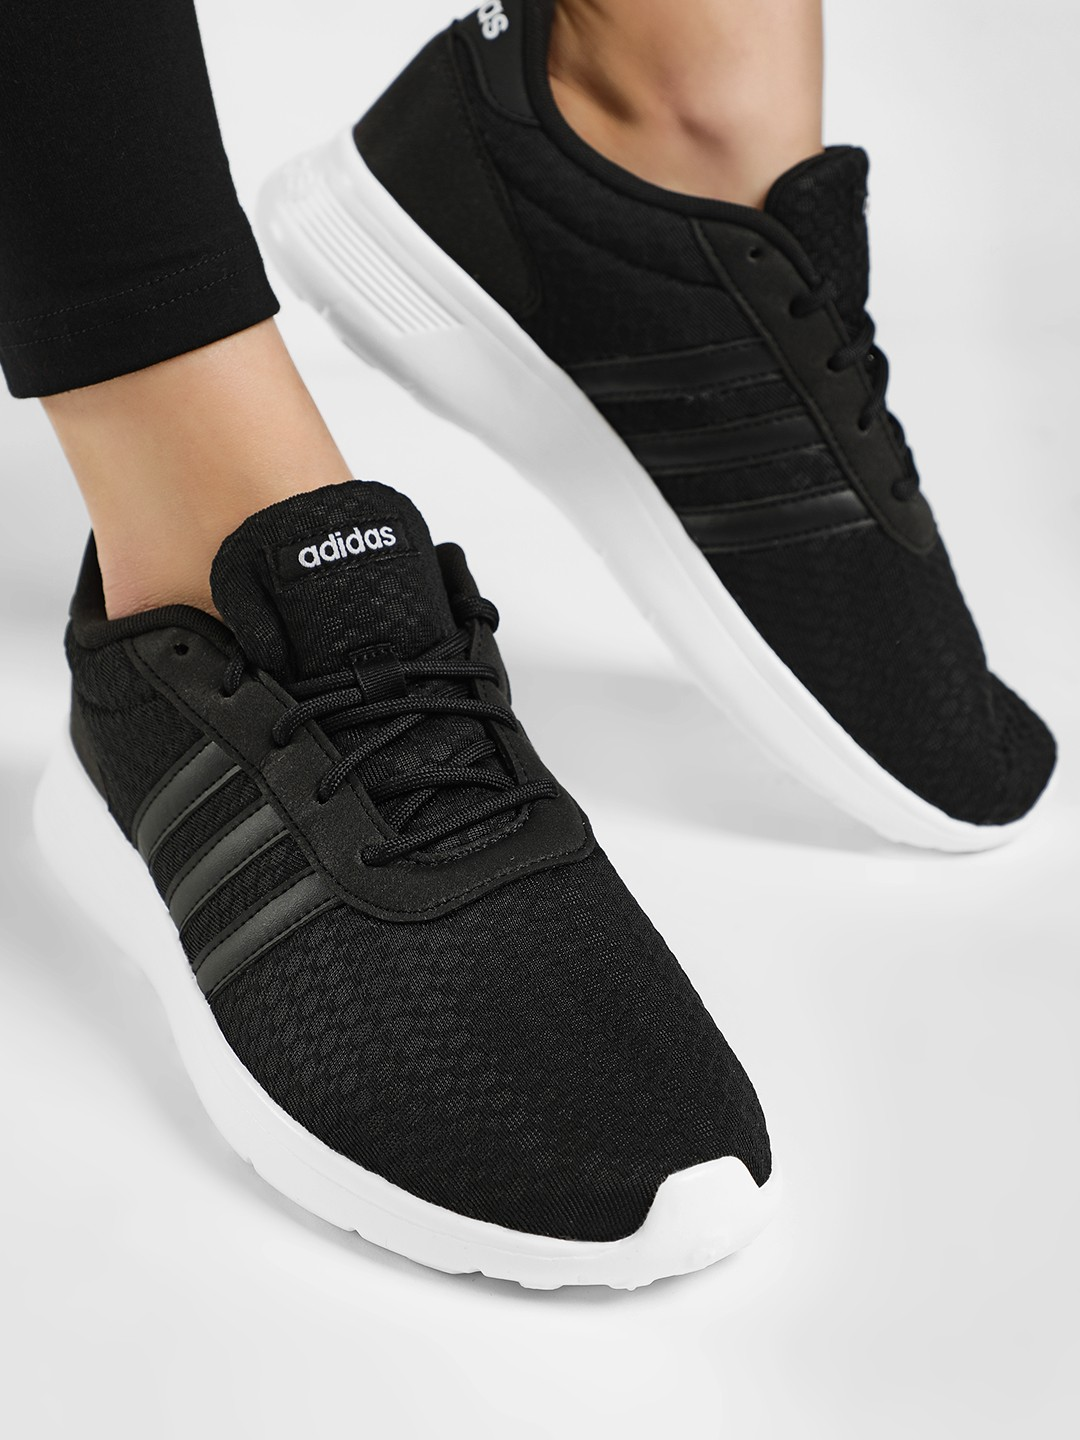 Adidas Black Lite Racer Shoes 1